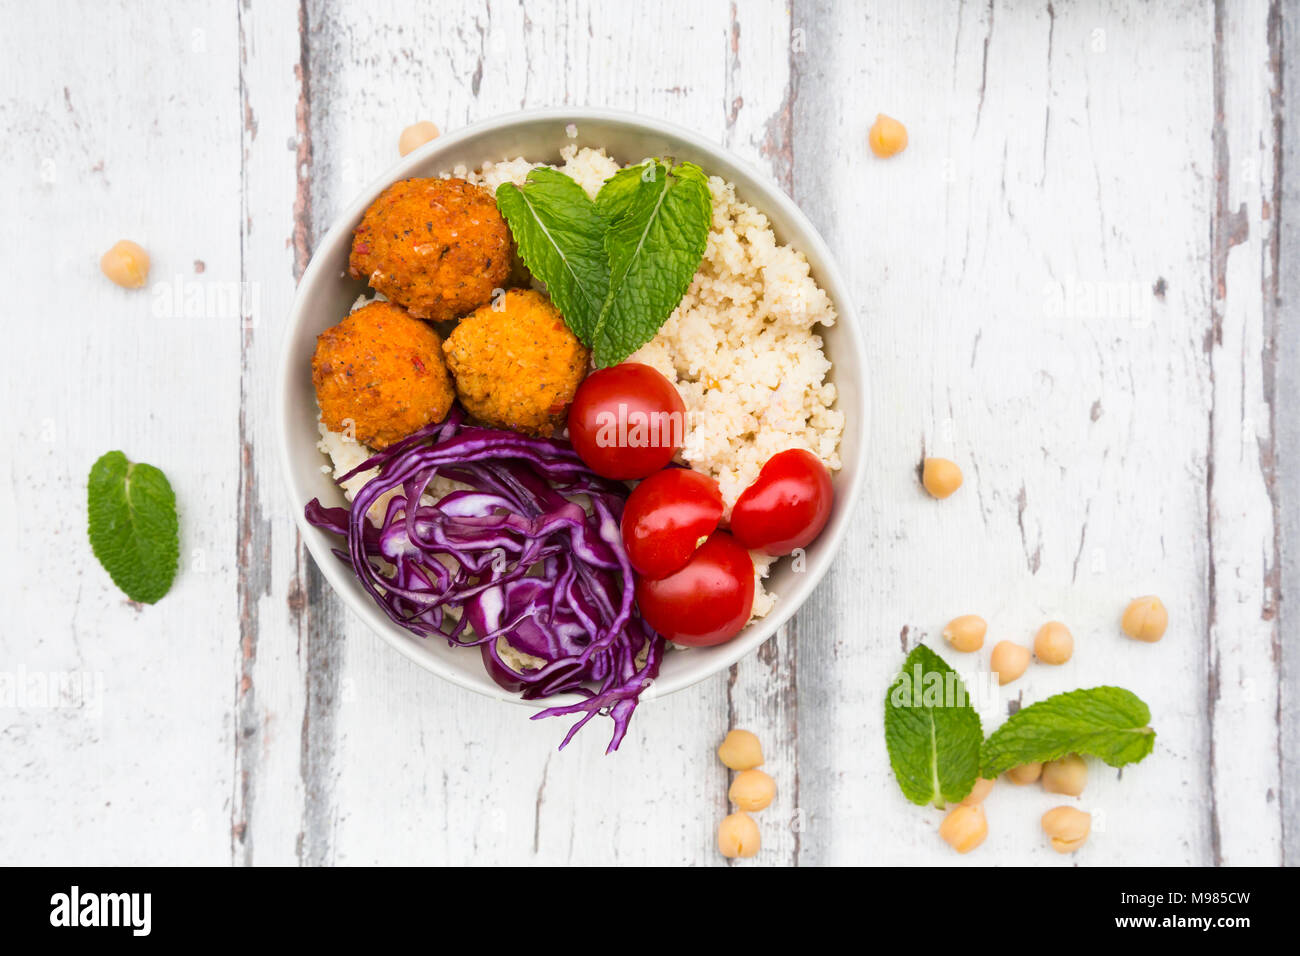 Buddha bowl of sweet potato balls, Couscous, Hummus and vegetables Stock Photo